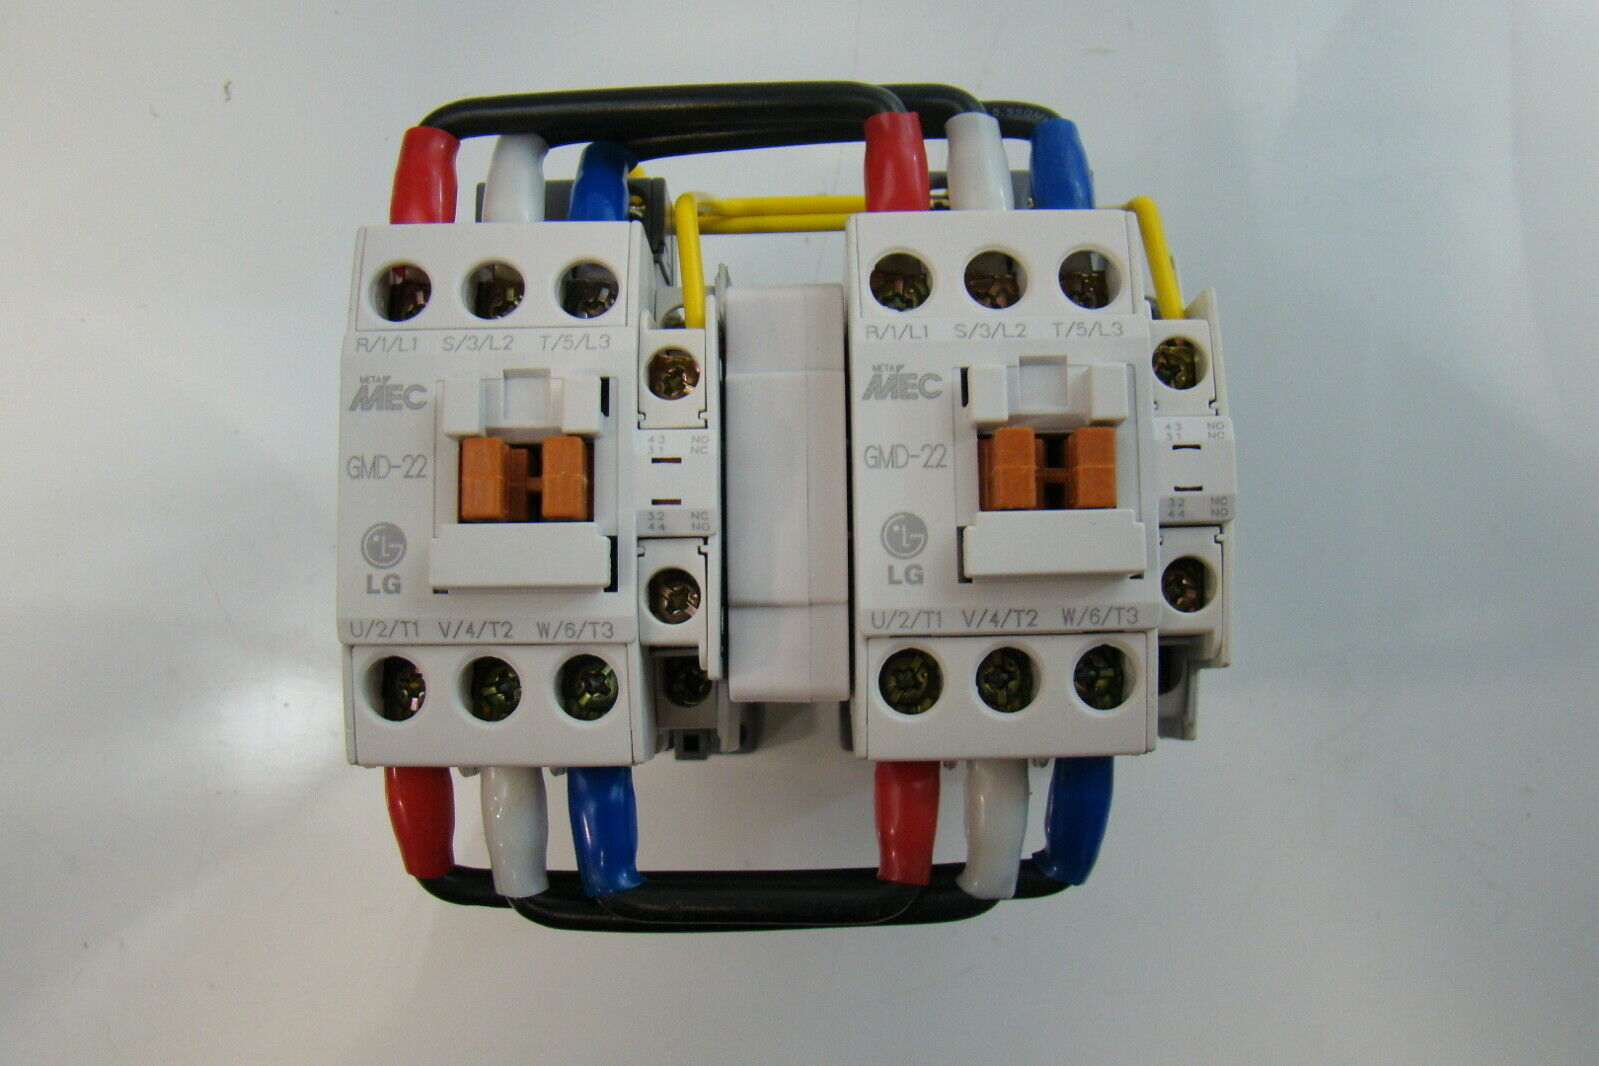 Details about LG Meta Mec 240V Contactor GMD 22R #19346C